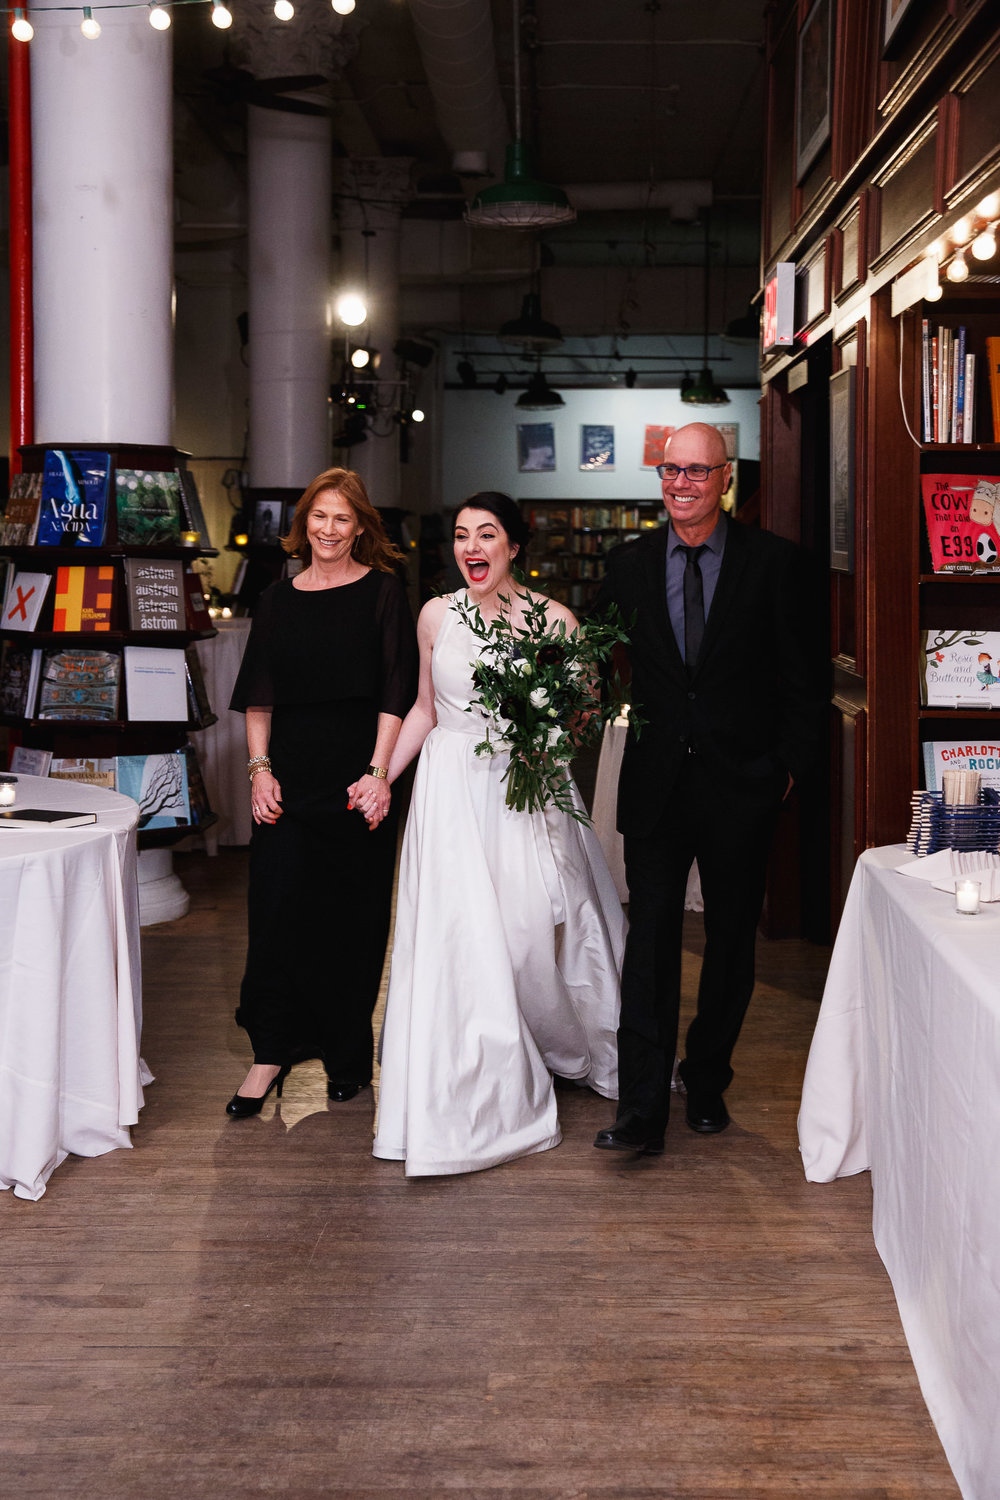 Bride being walked down the aisle by her parents at the Housing Works Bookstore